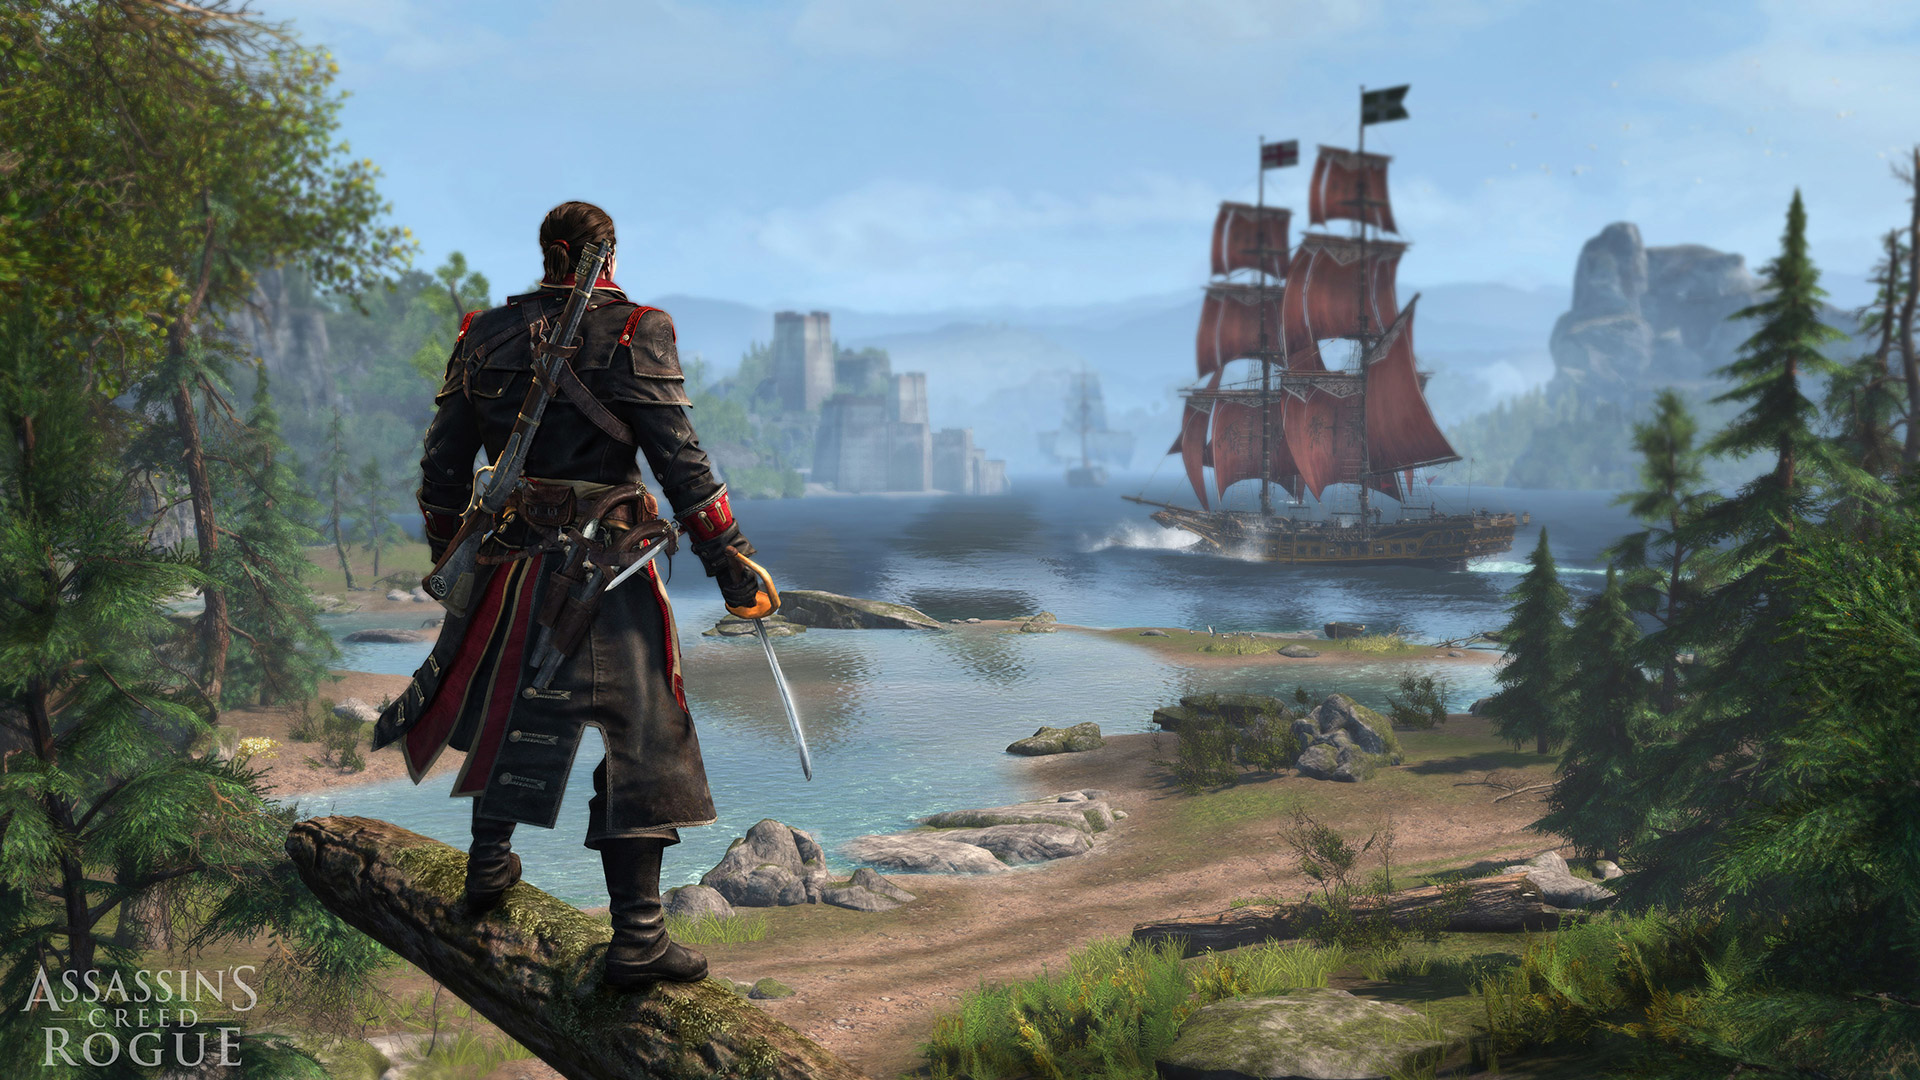 Assassin's Creed: Rogue Wallpaper in 1920x1080